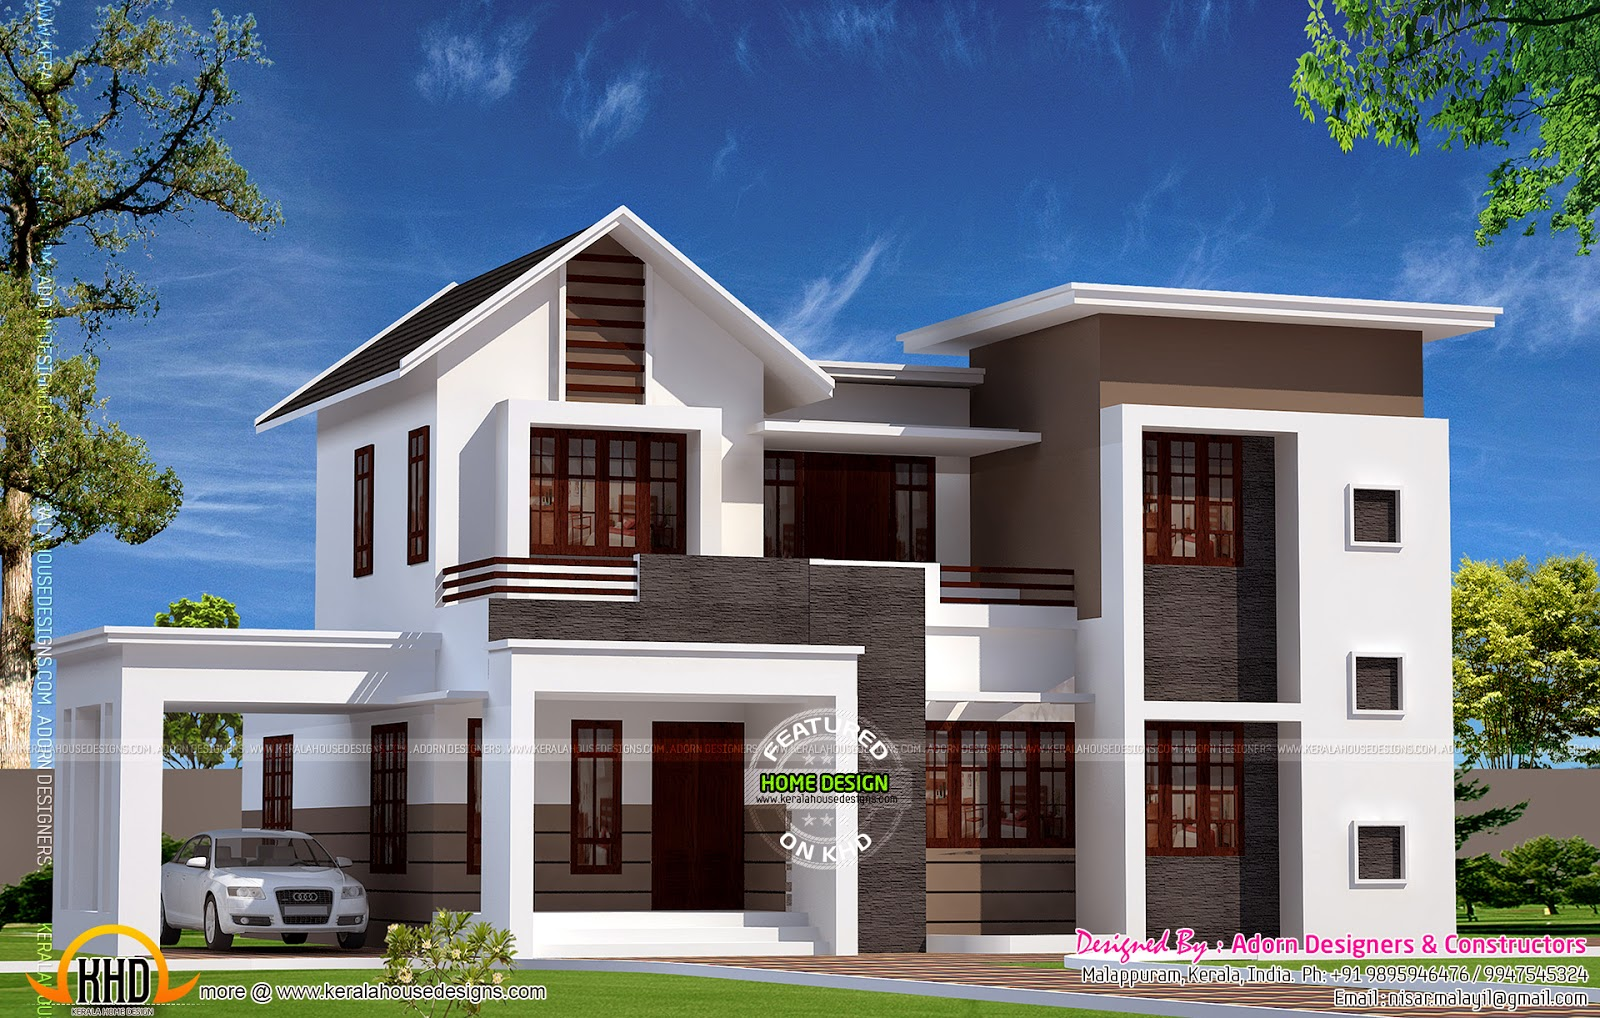 September 2014 kerala home design and floor plans - Home design one ...